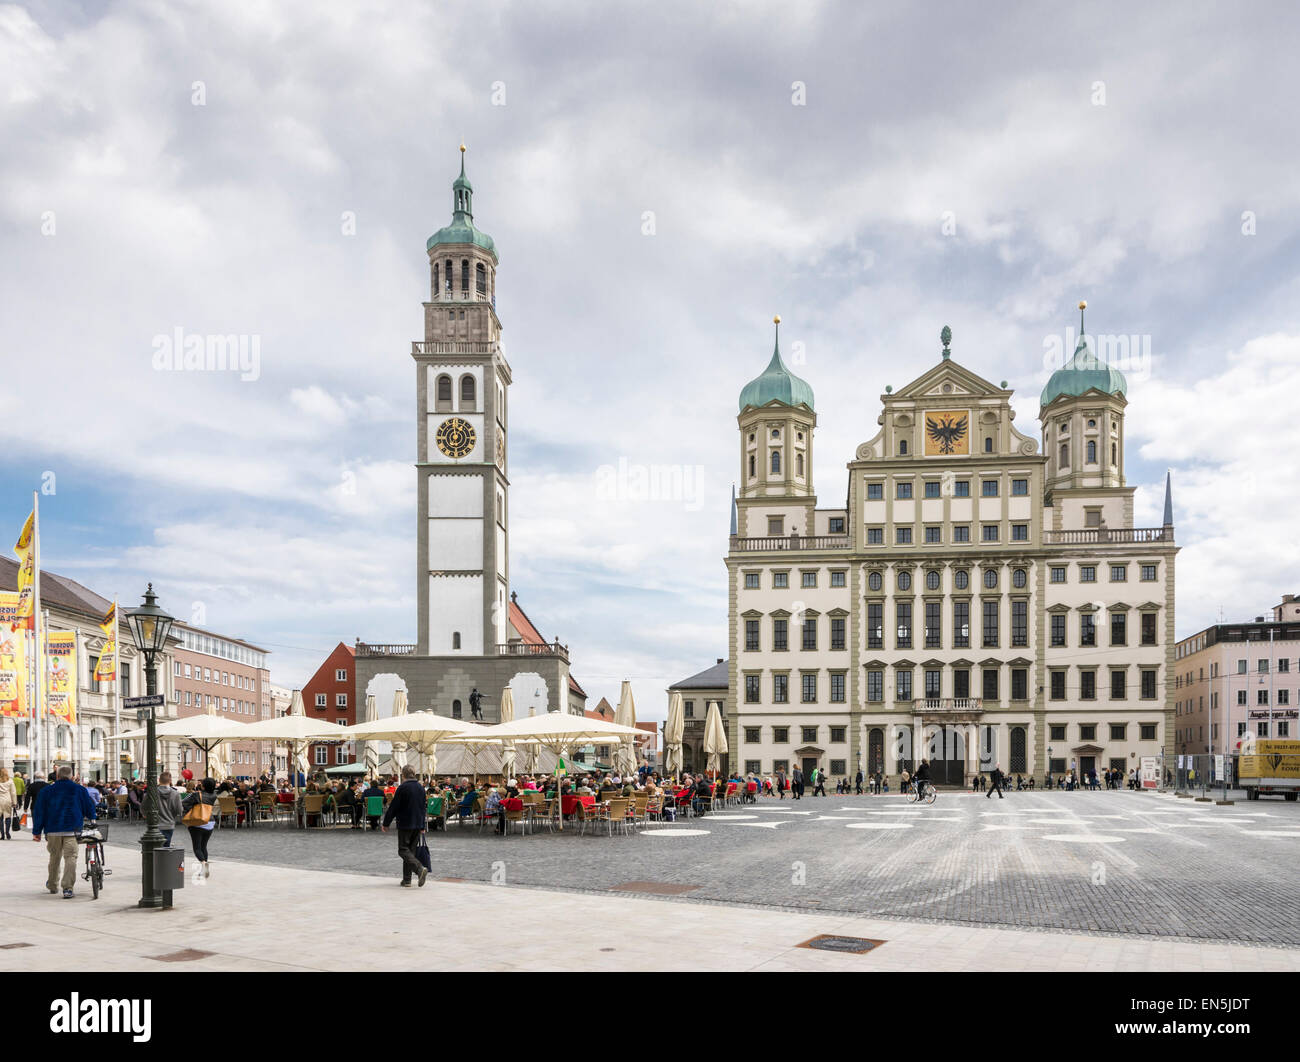 AUGSBURG, Deutschland - APRIL 11: Touristen am Rathausplatz in Augsburg, Deutschland am 11. April 2015. Stockbild